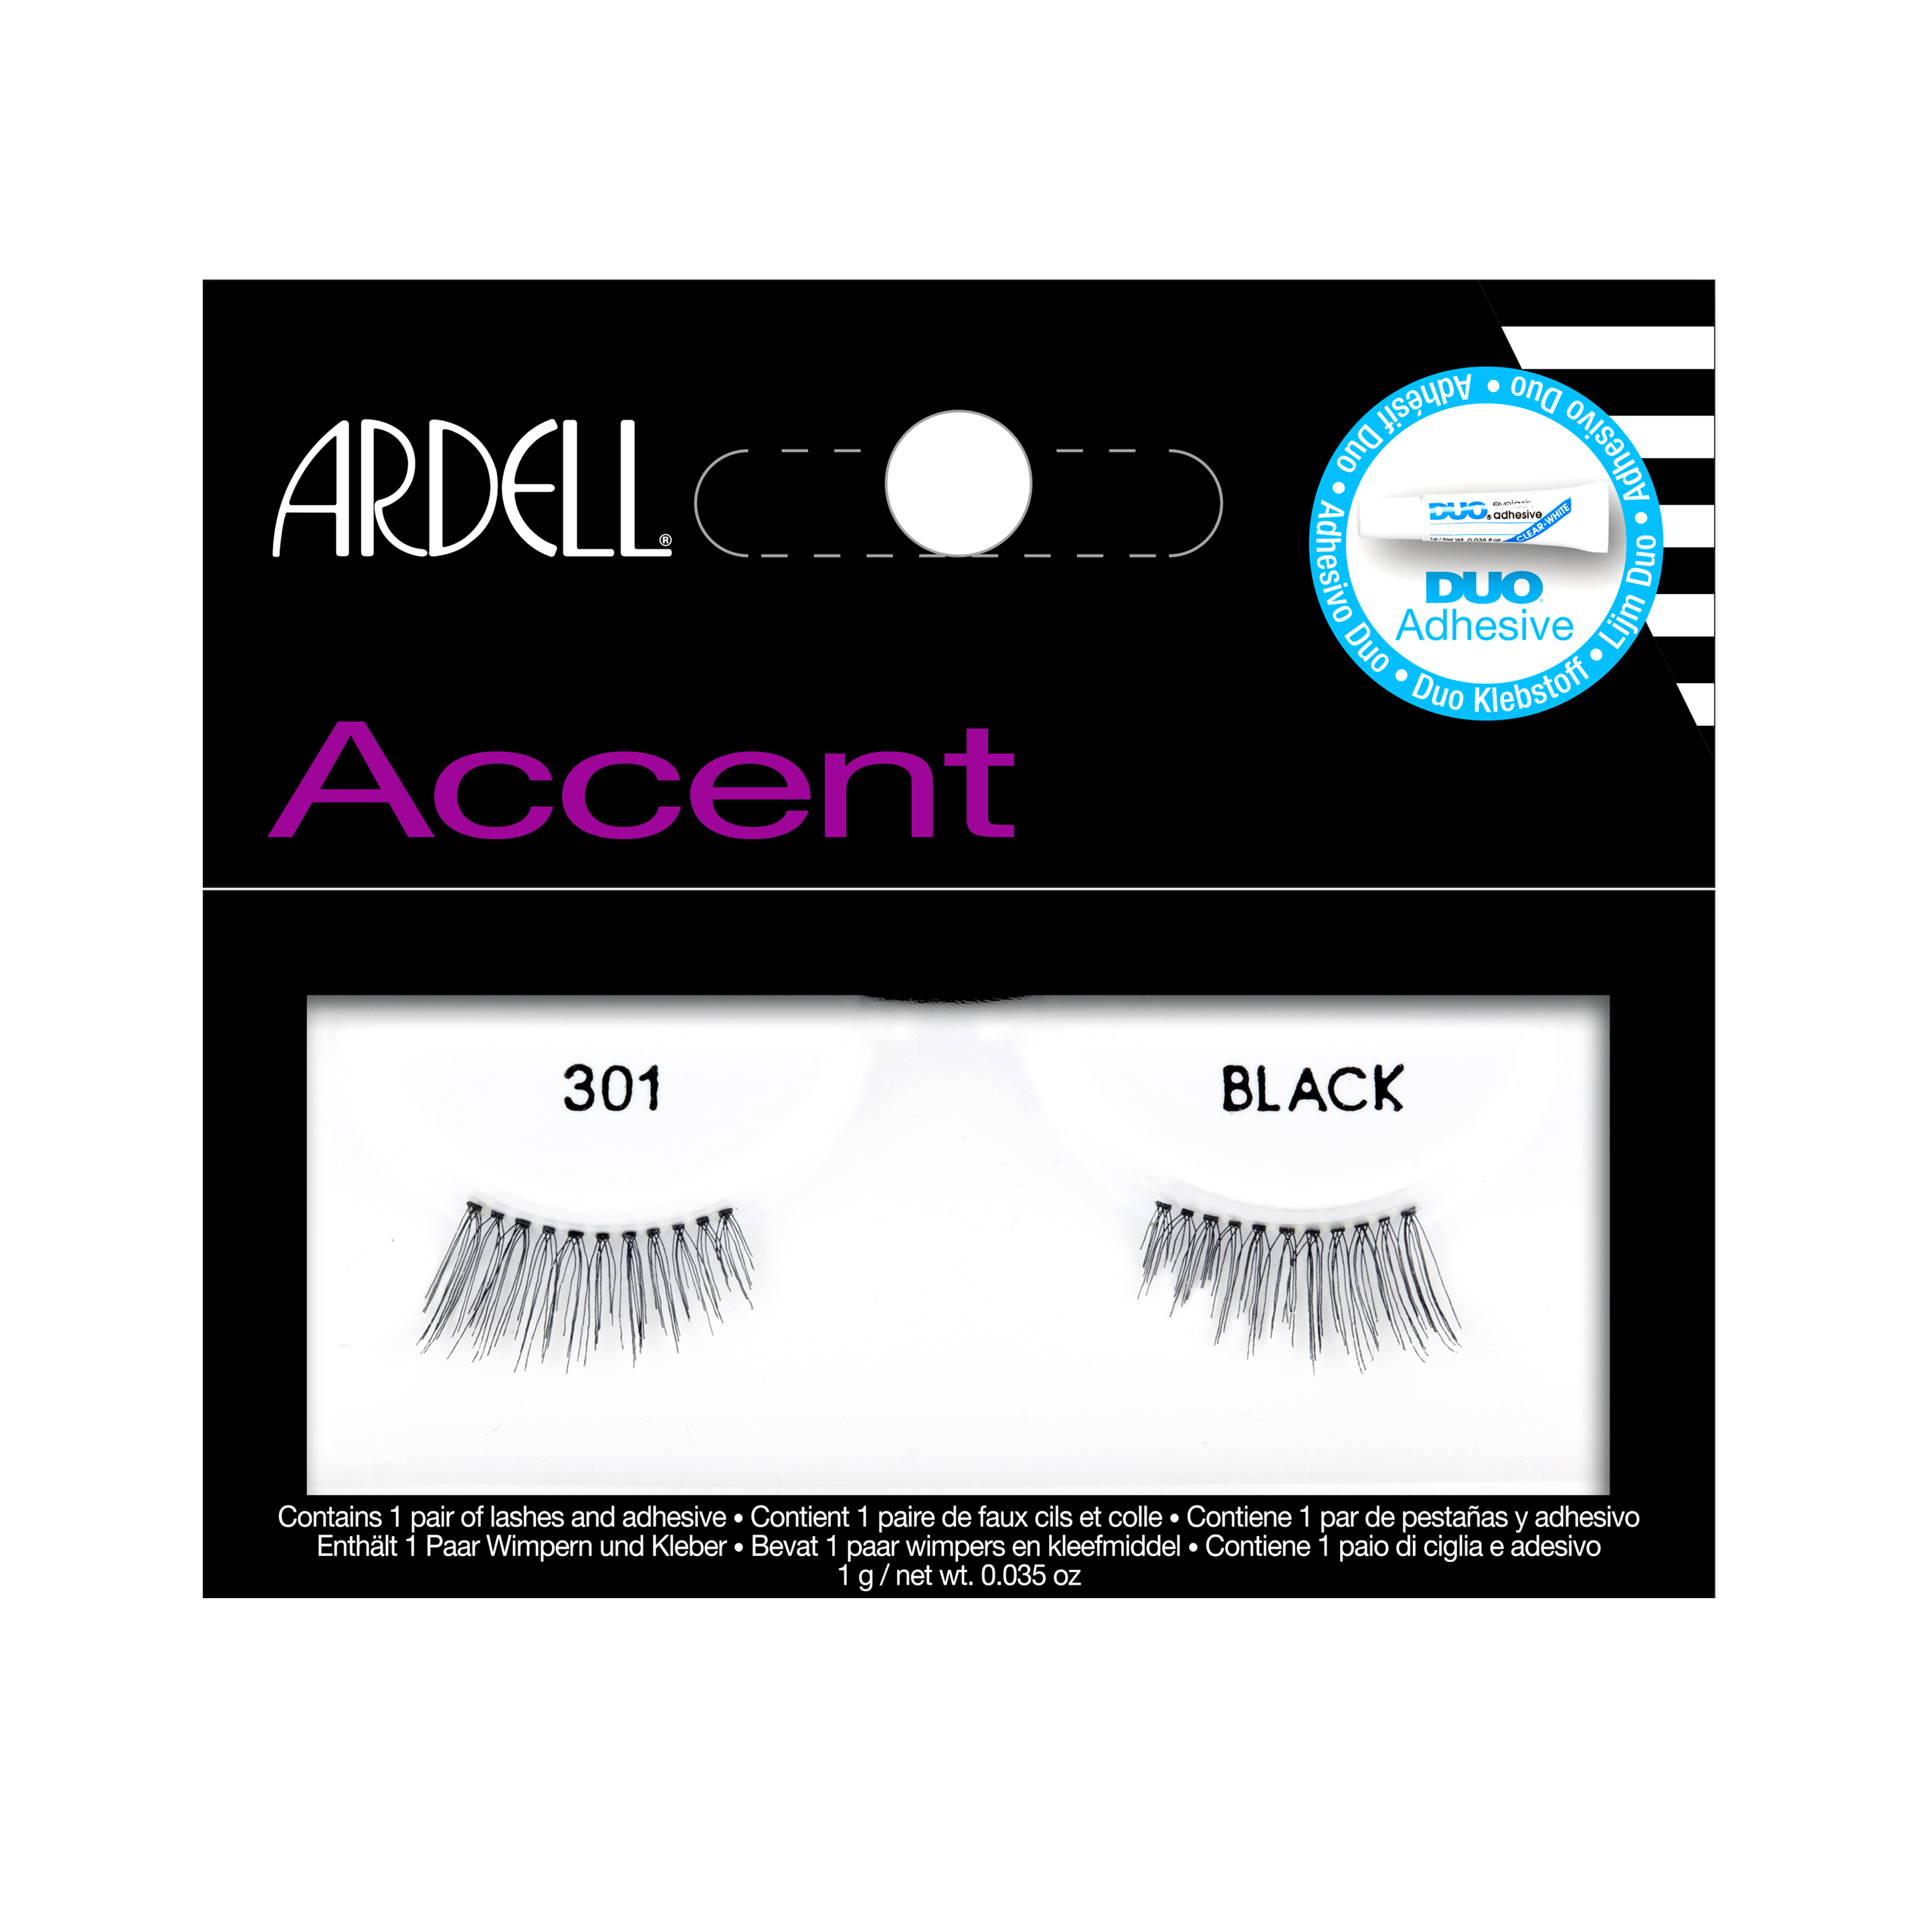 Accents – 301